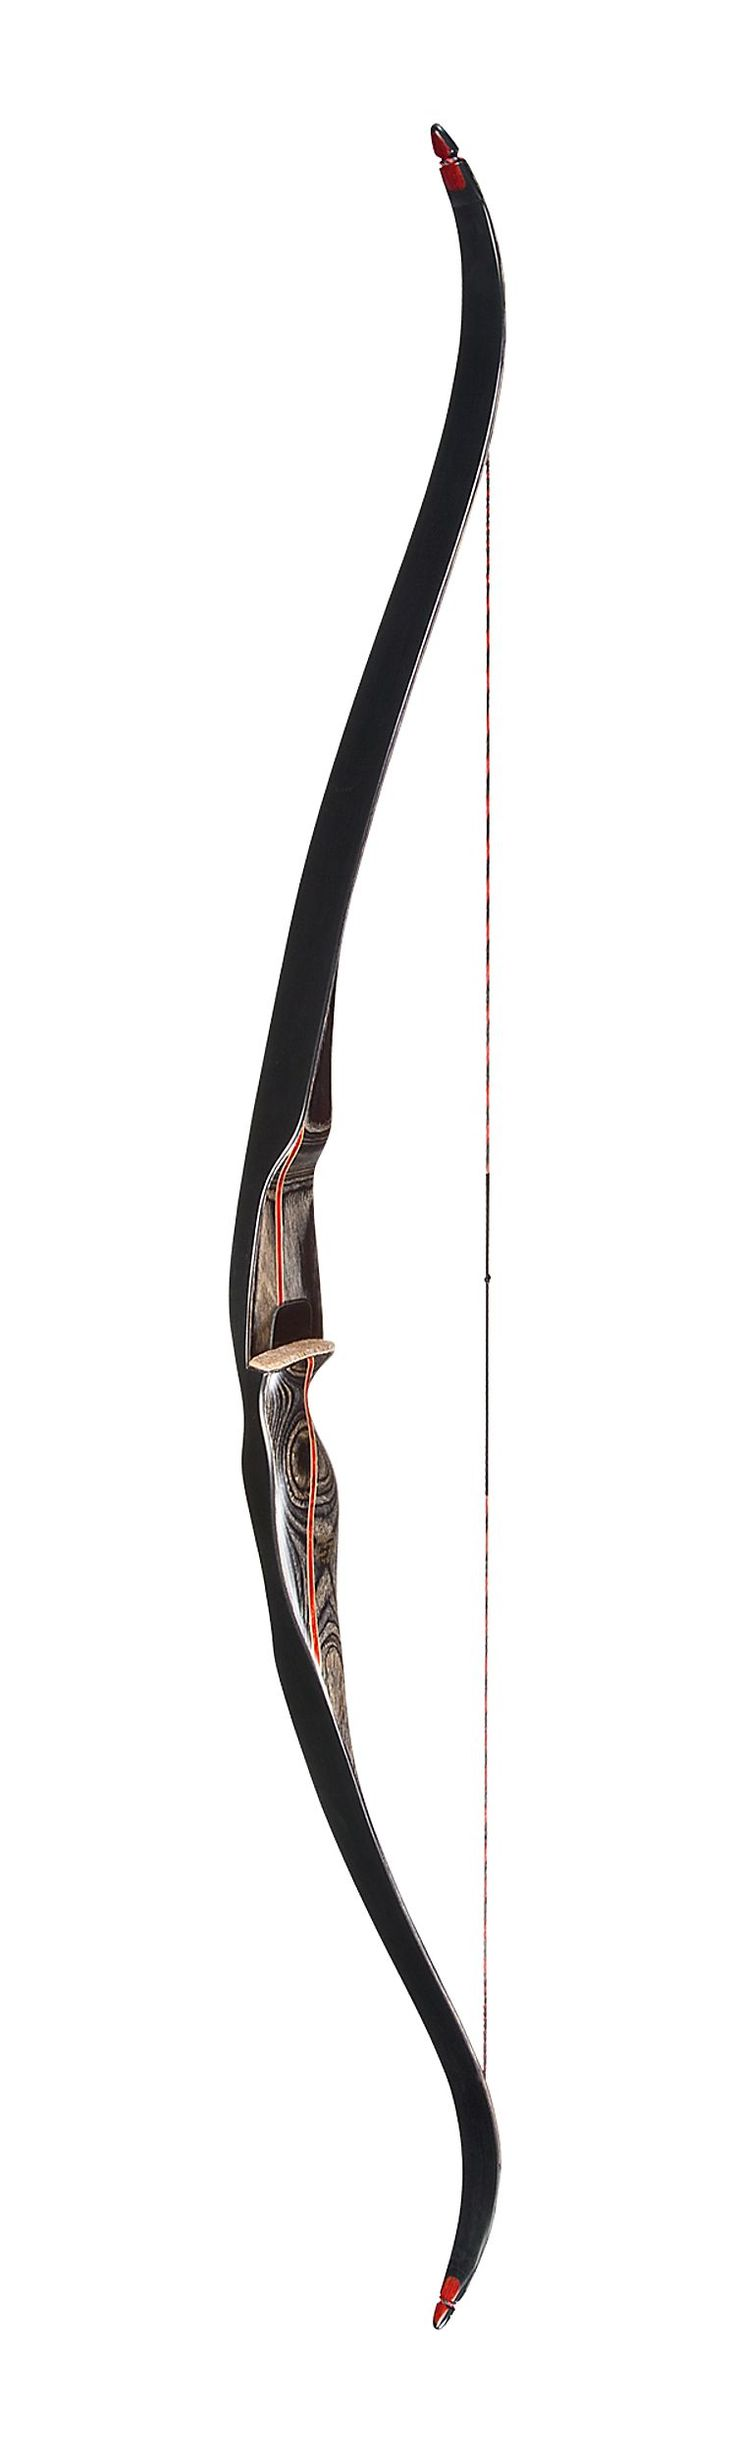 Bear Archery Super Grizzly Recurve Bows | Bass Pro Shops 50lb- right handed